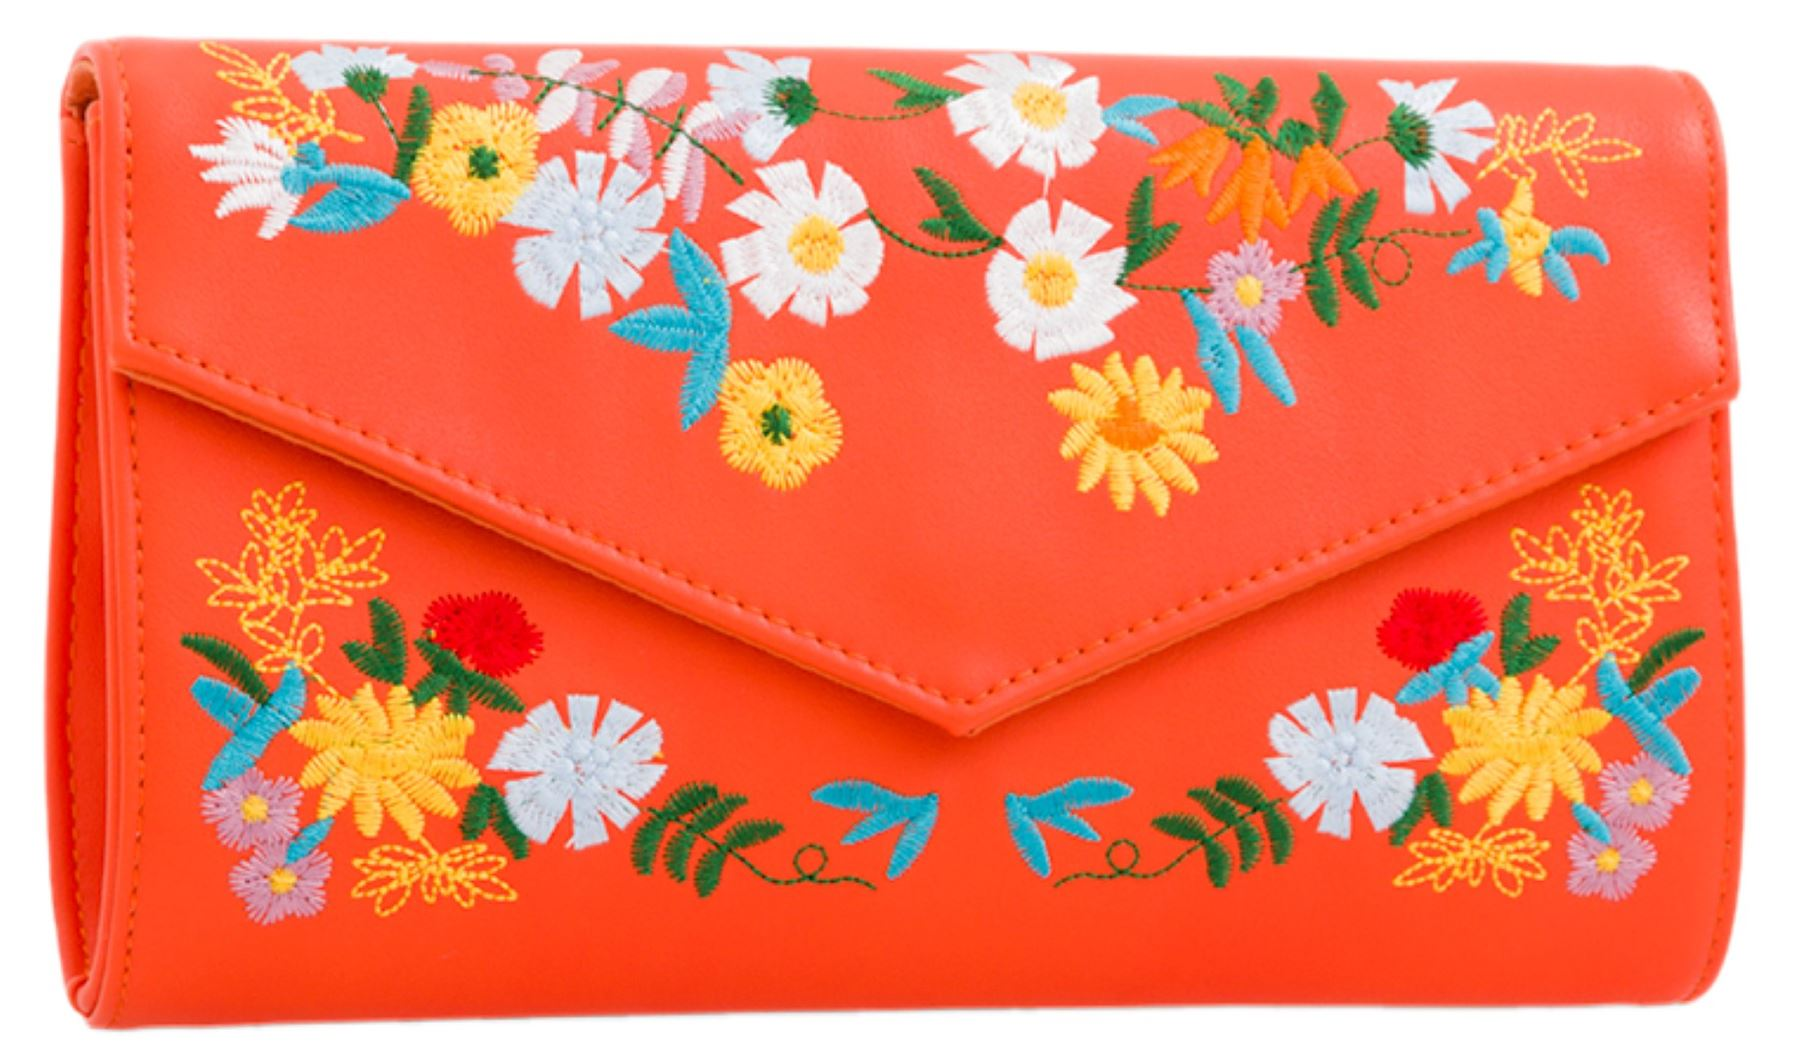 Womens-Faux-Leather-Clutch-Bag-Embroidered-Floral-Summer-Party-Evening